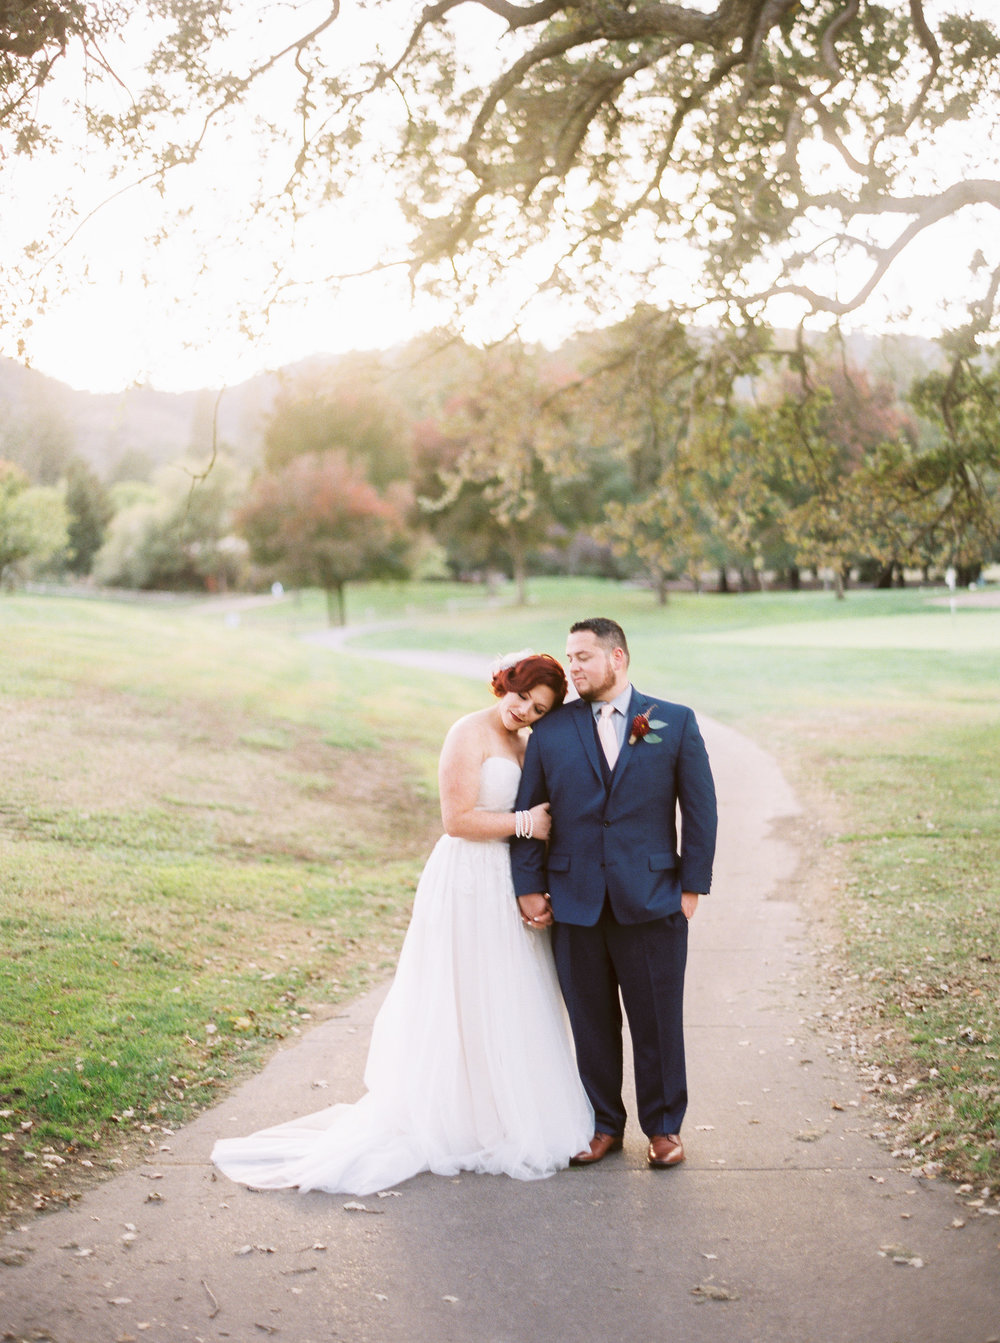 fall-inspired-wedding-at-vitners-golf-club-in-napa-california-95.jpg